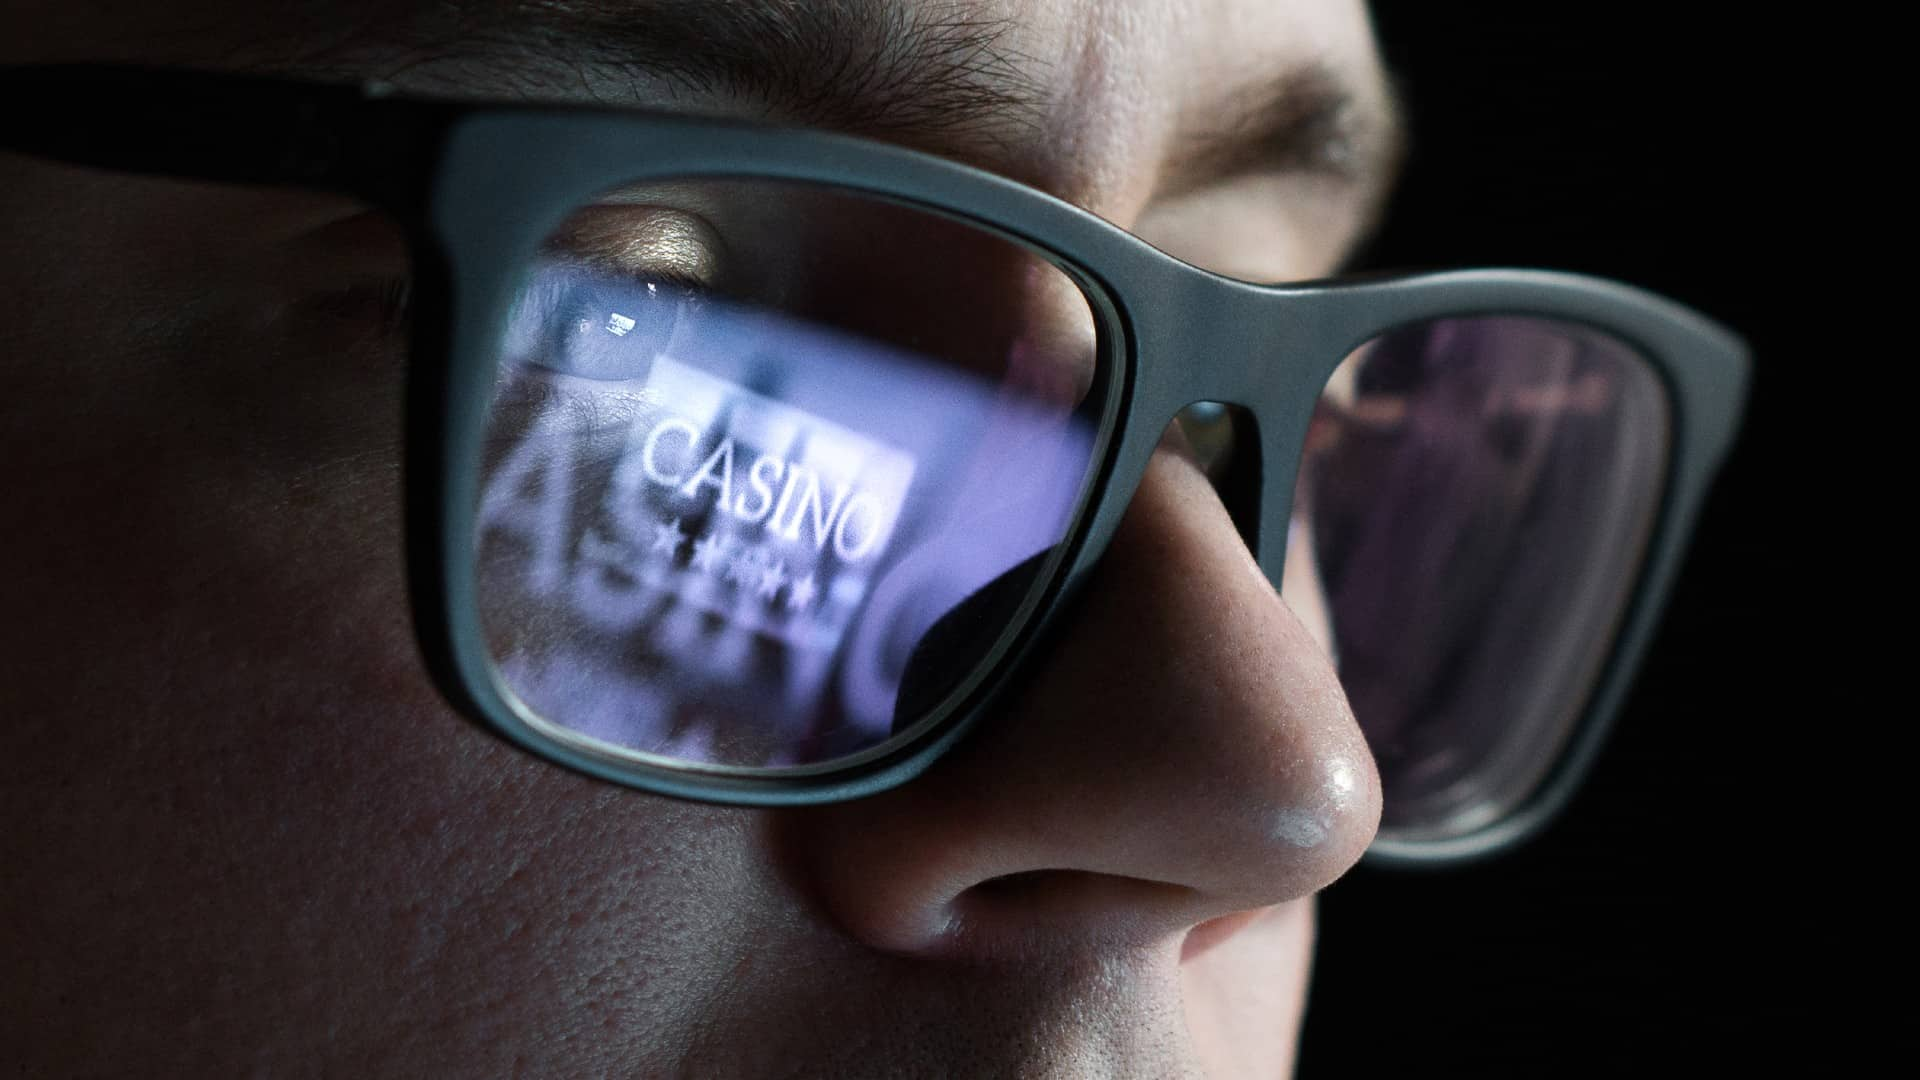 """a close up of a man wearing dark glasses with the word """"casino"""" and stars reflected in the glass of one of his eyes."""